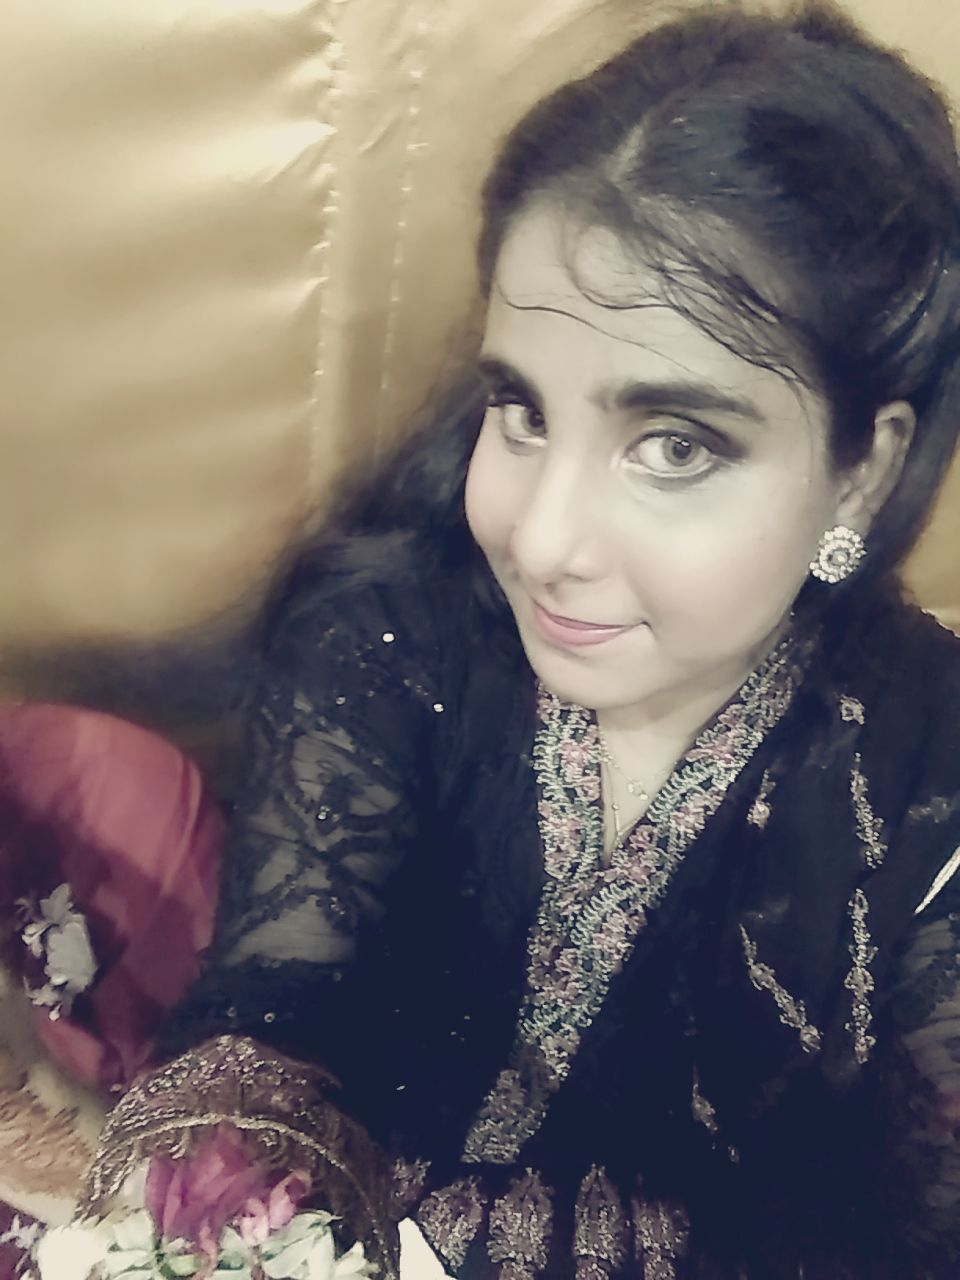 Marriage for swat girl This 14